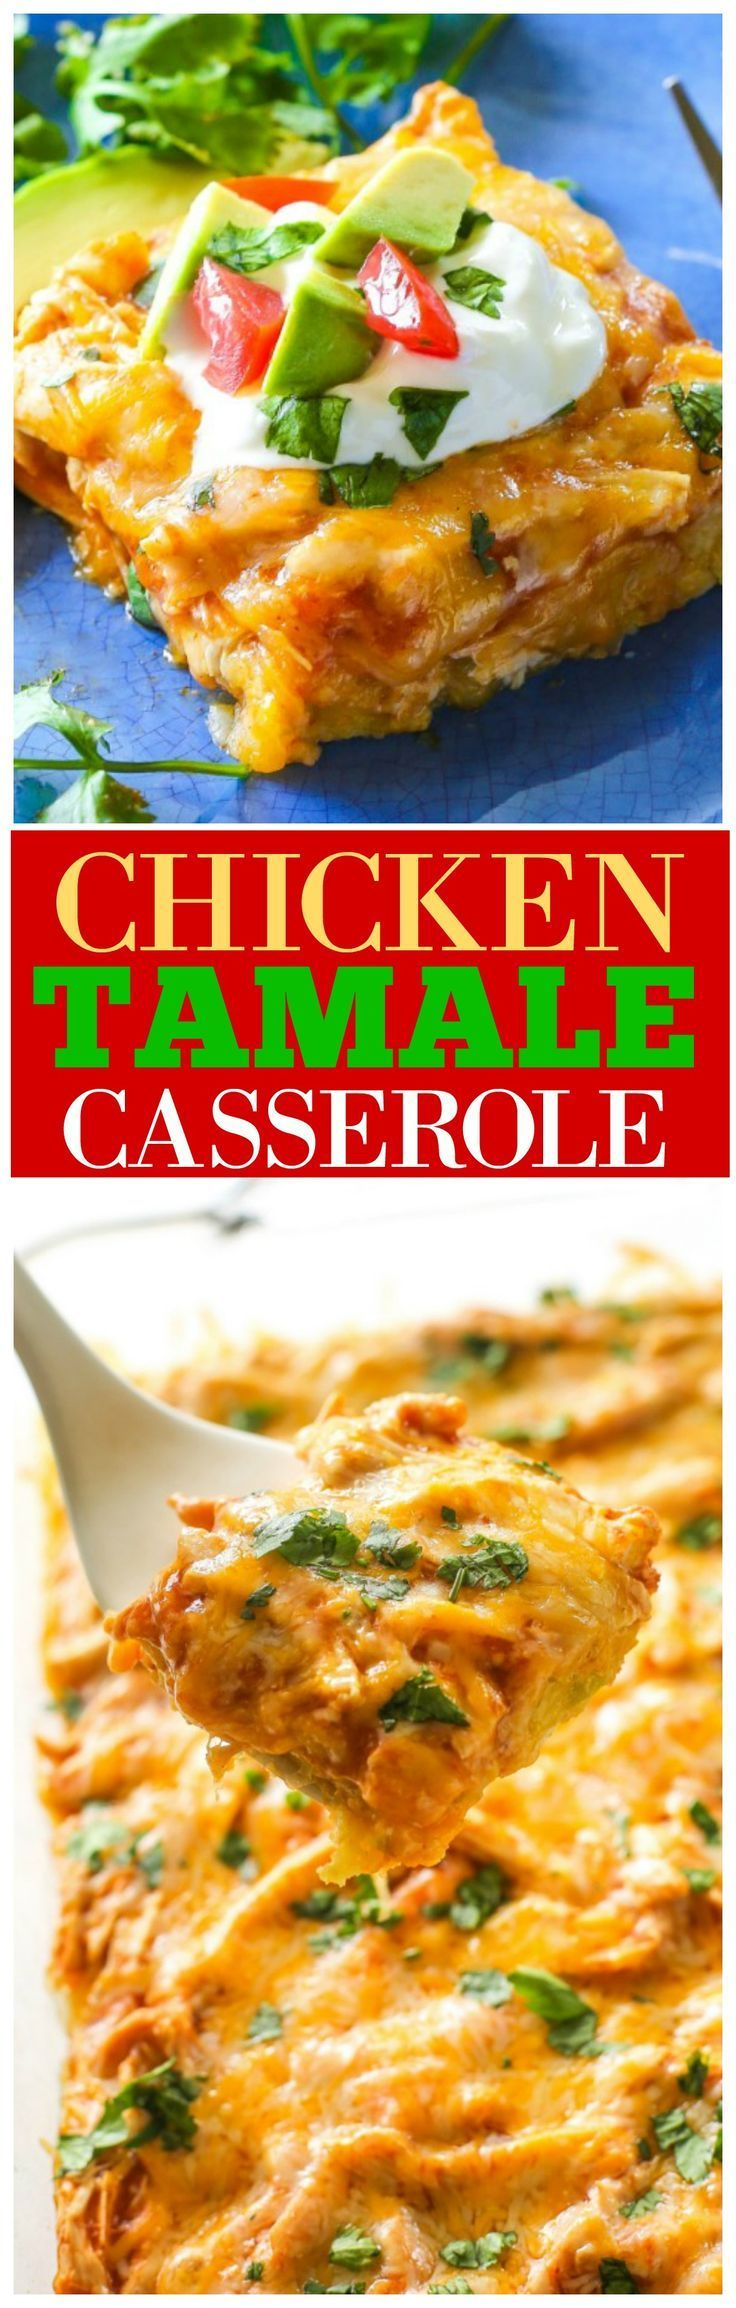 Chicken Tamale Casserole - a sweet cornbread crust topped with enchilada sauce and chicken. This is a crowd pleaser! http://the-girl-who-ate-everything.com